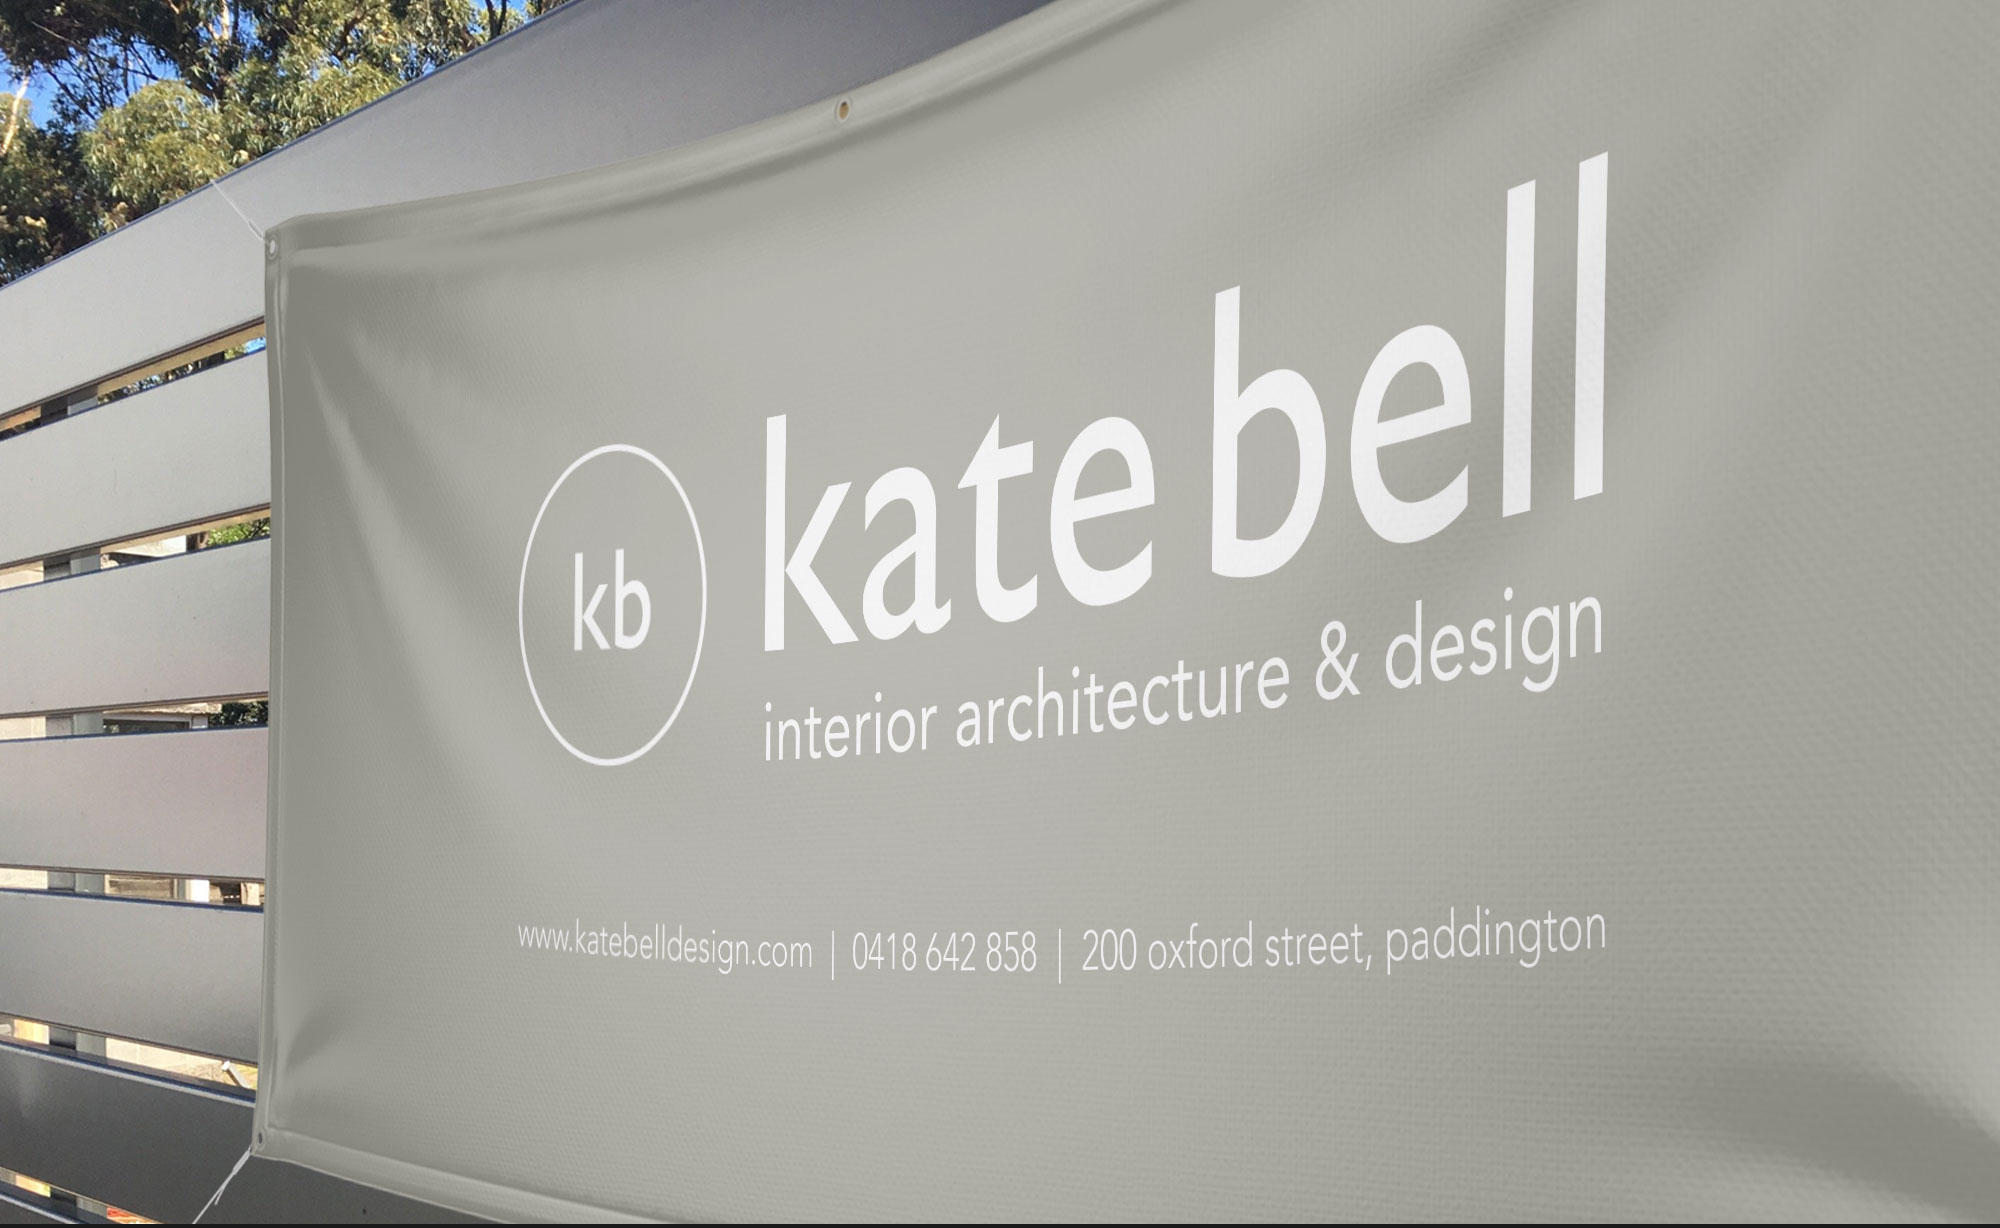 ©-Chris-Rae-Design-Kate-Bell-Interior-Architecture-and-Design-Worksite-Sign.jpg